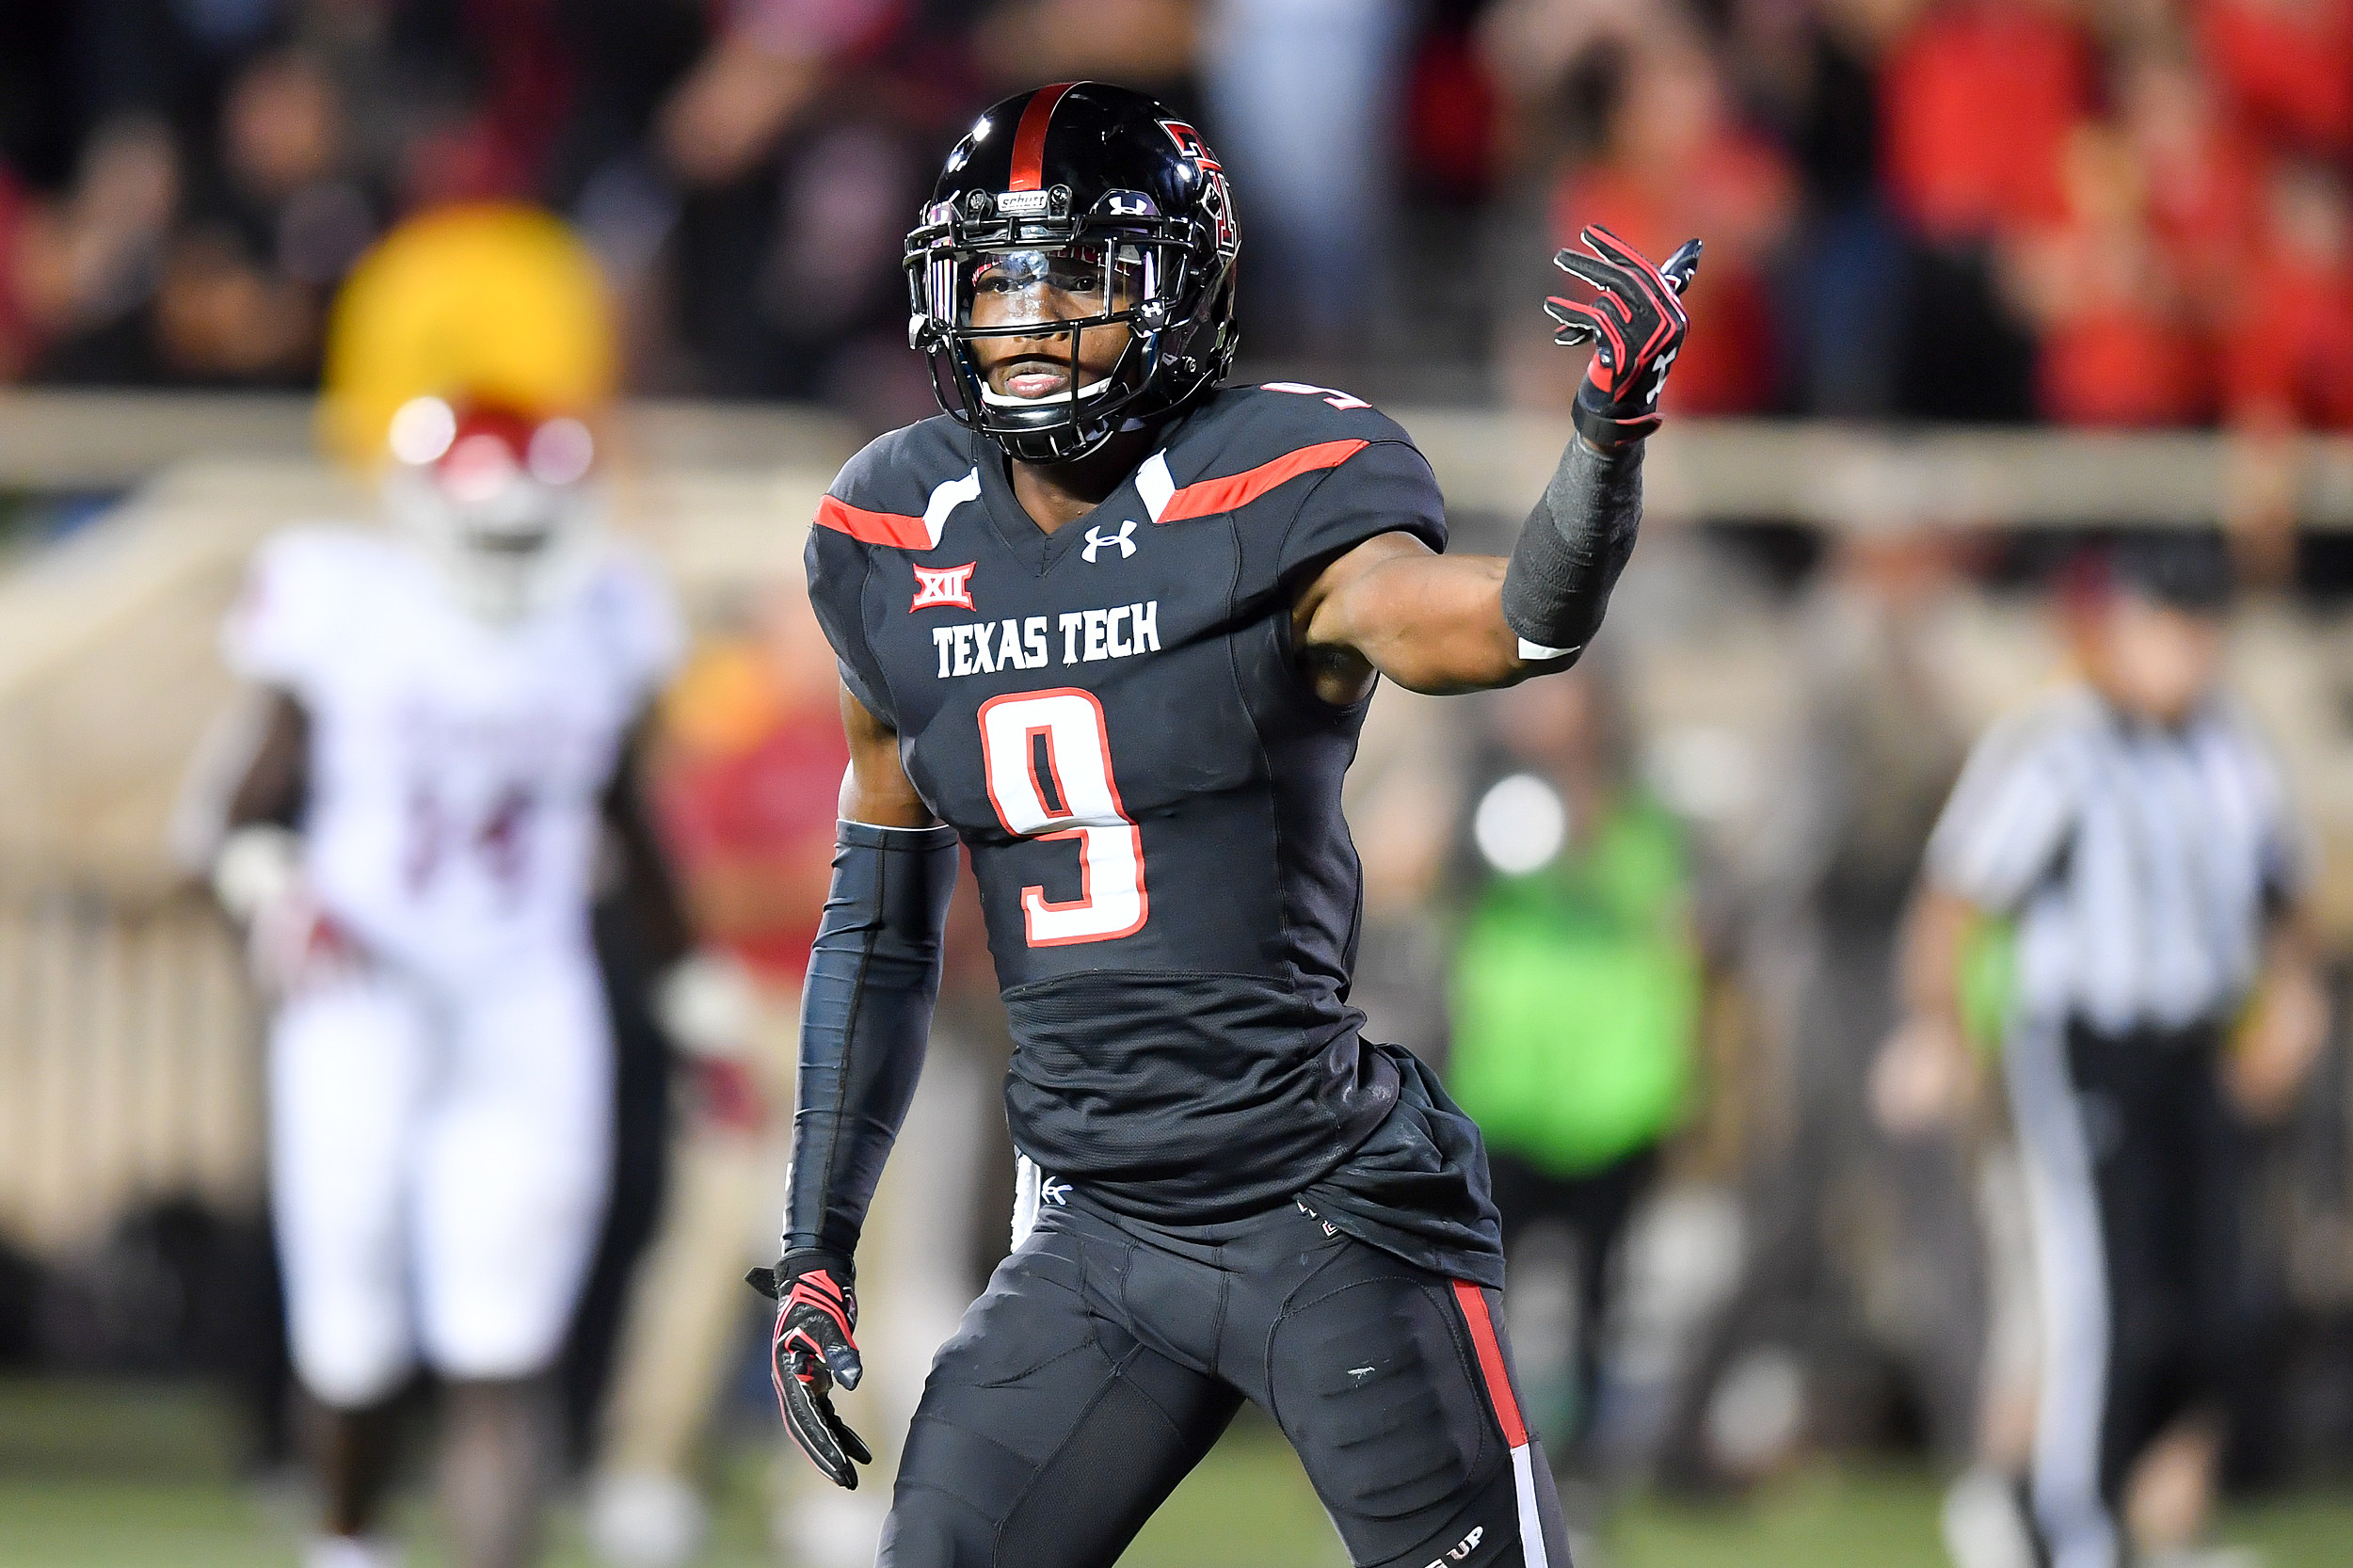 Texas Tech transfer Jonathan Giles chooses LSU